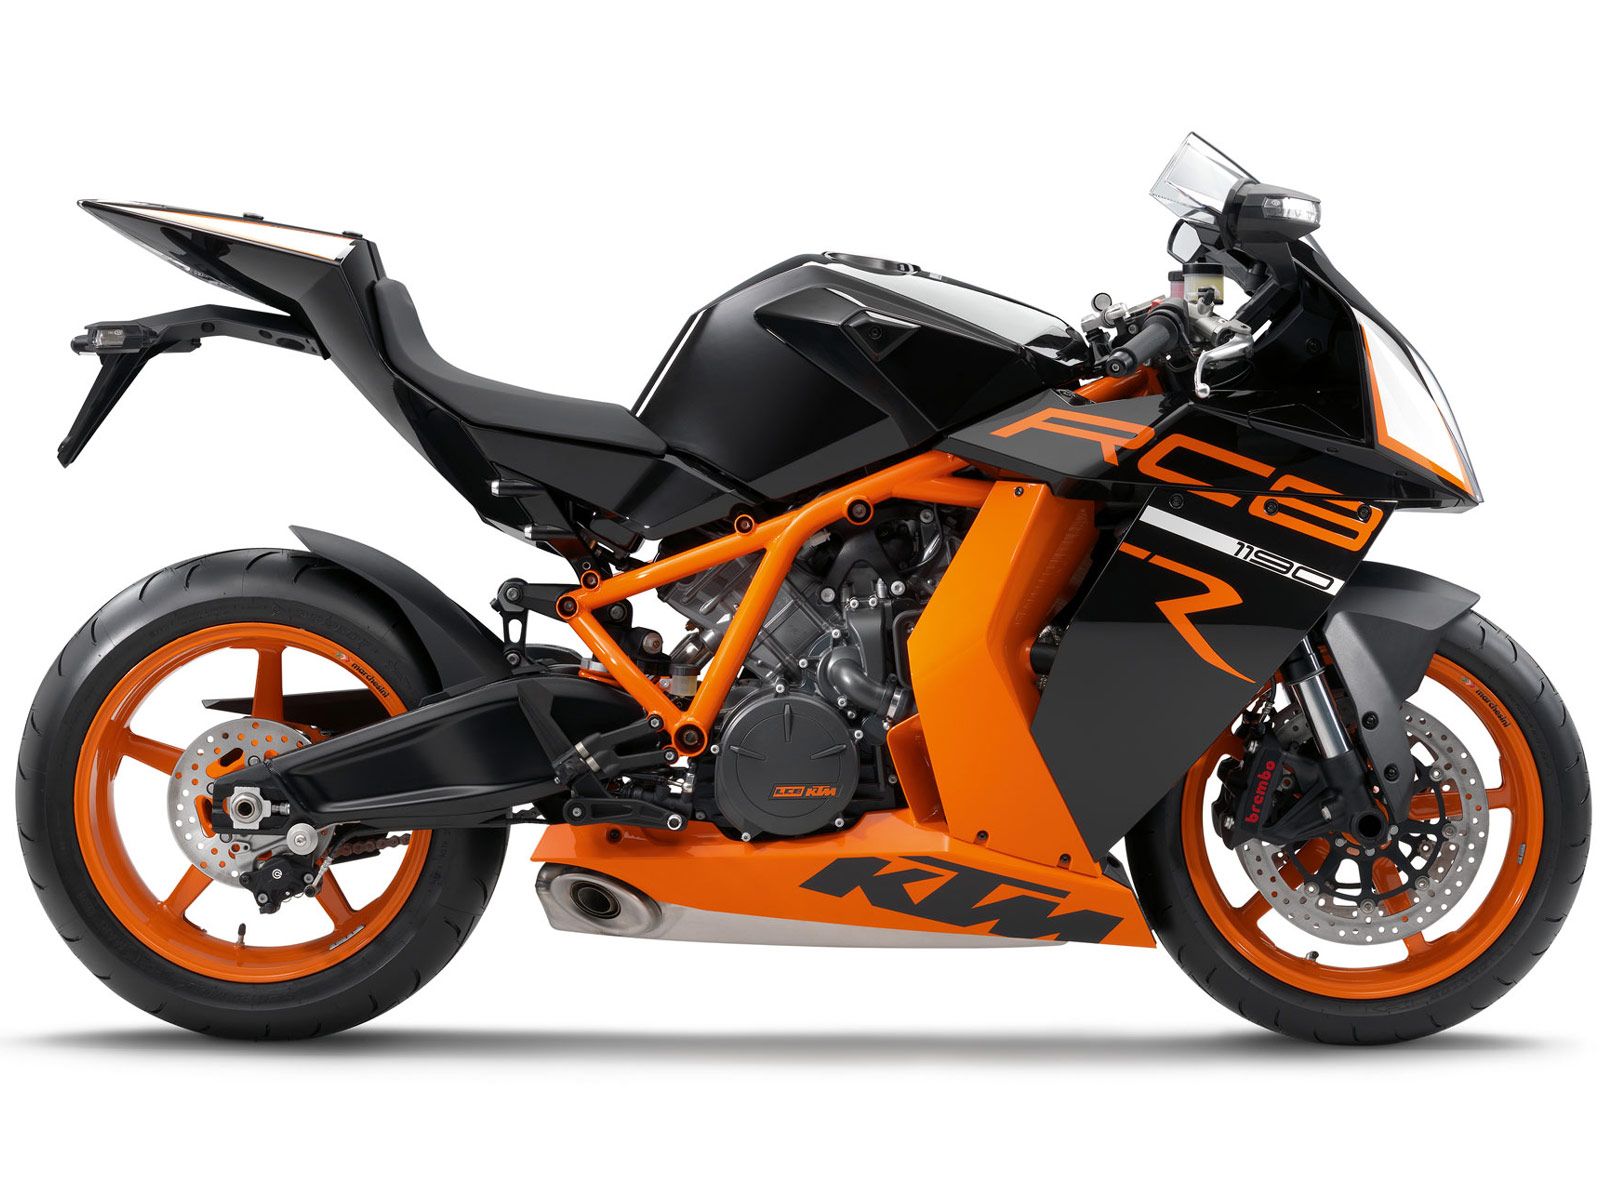 2012 KTM 1190 RC8R | KTM motorcycle wallpaper |